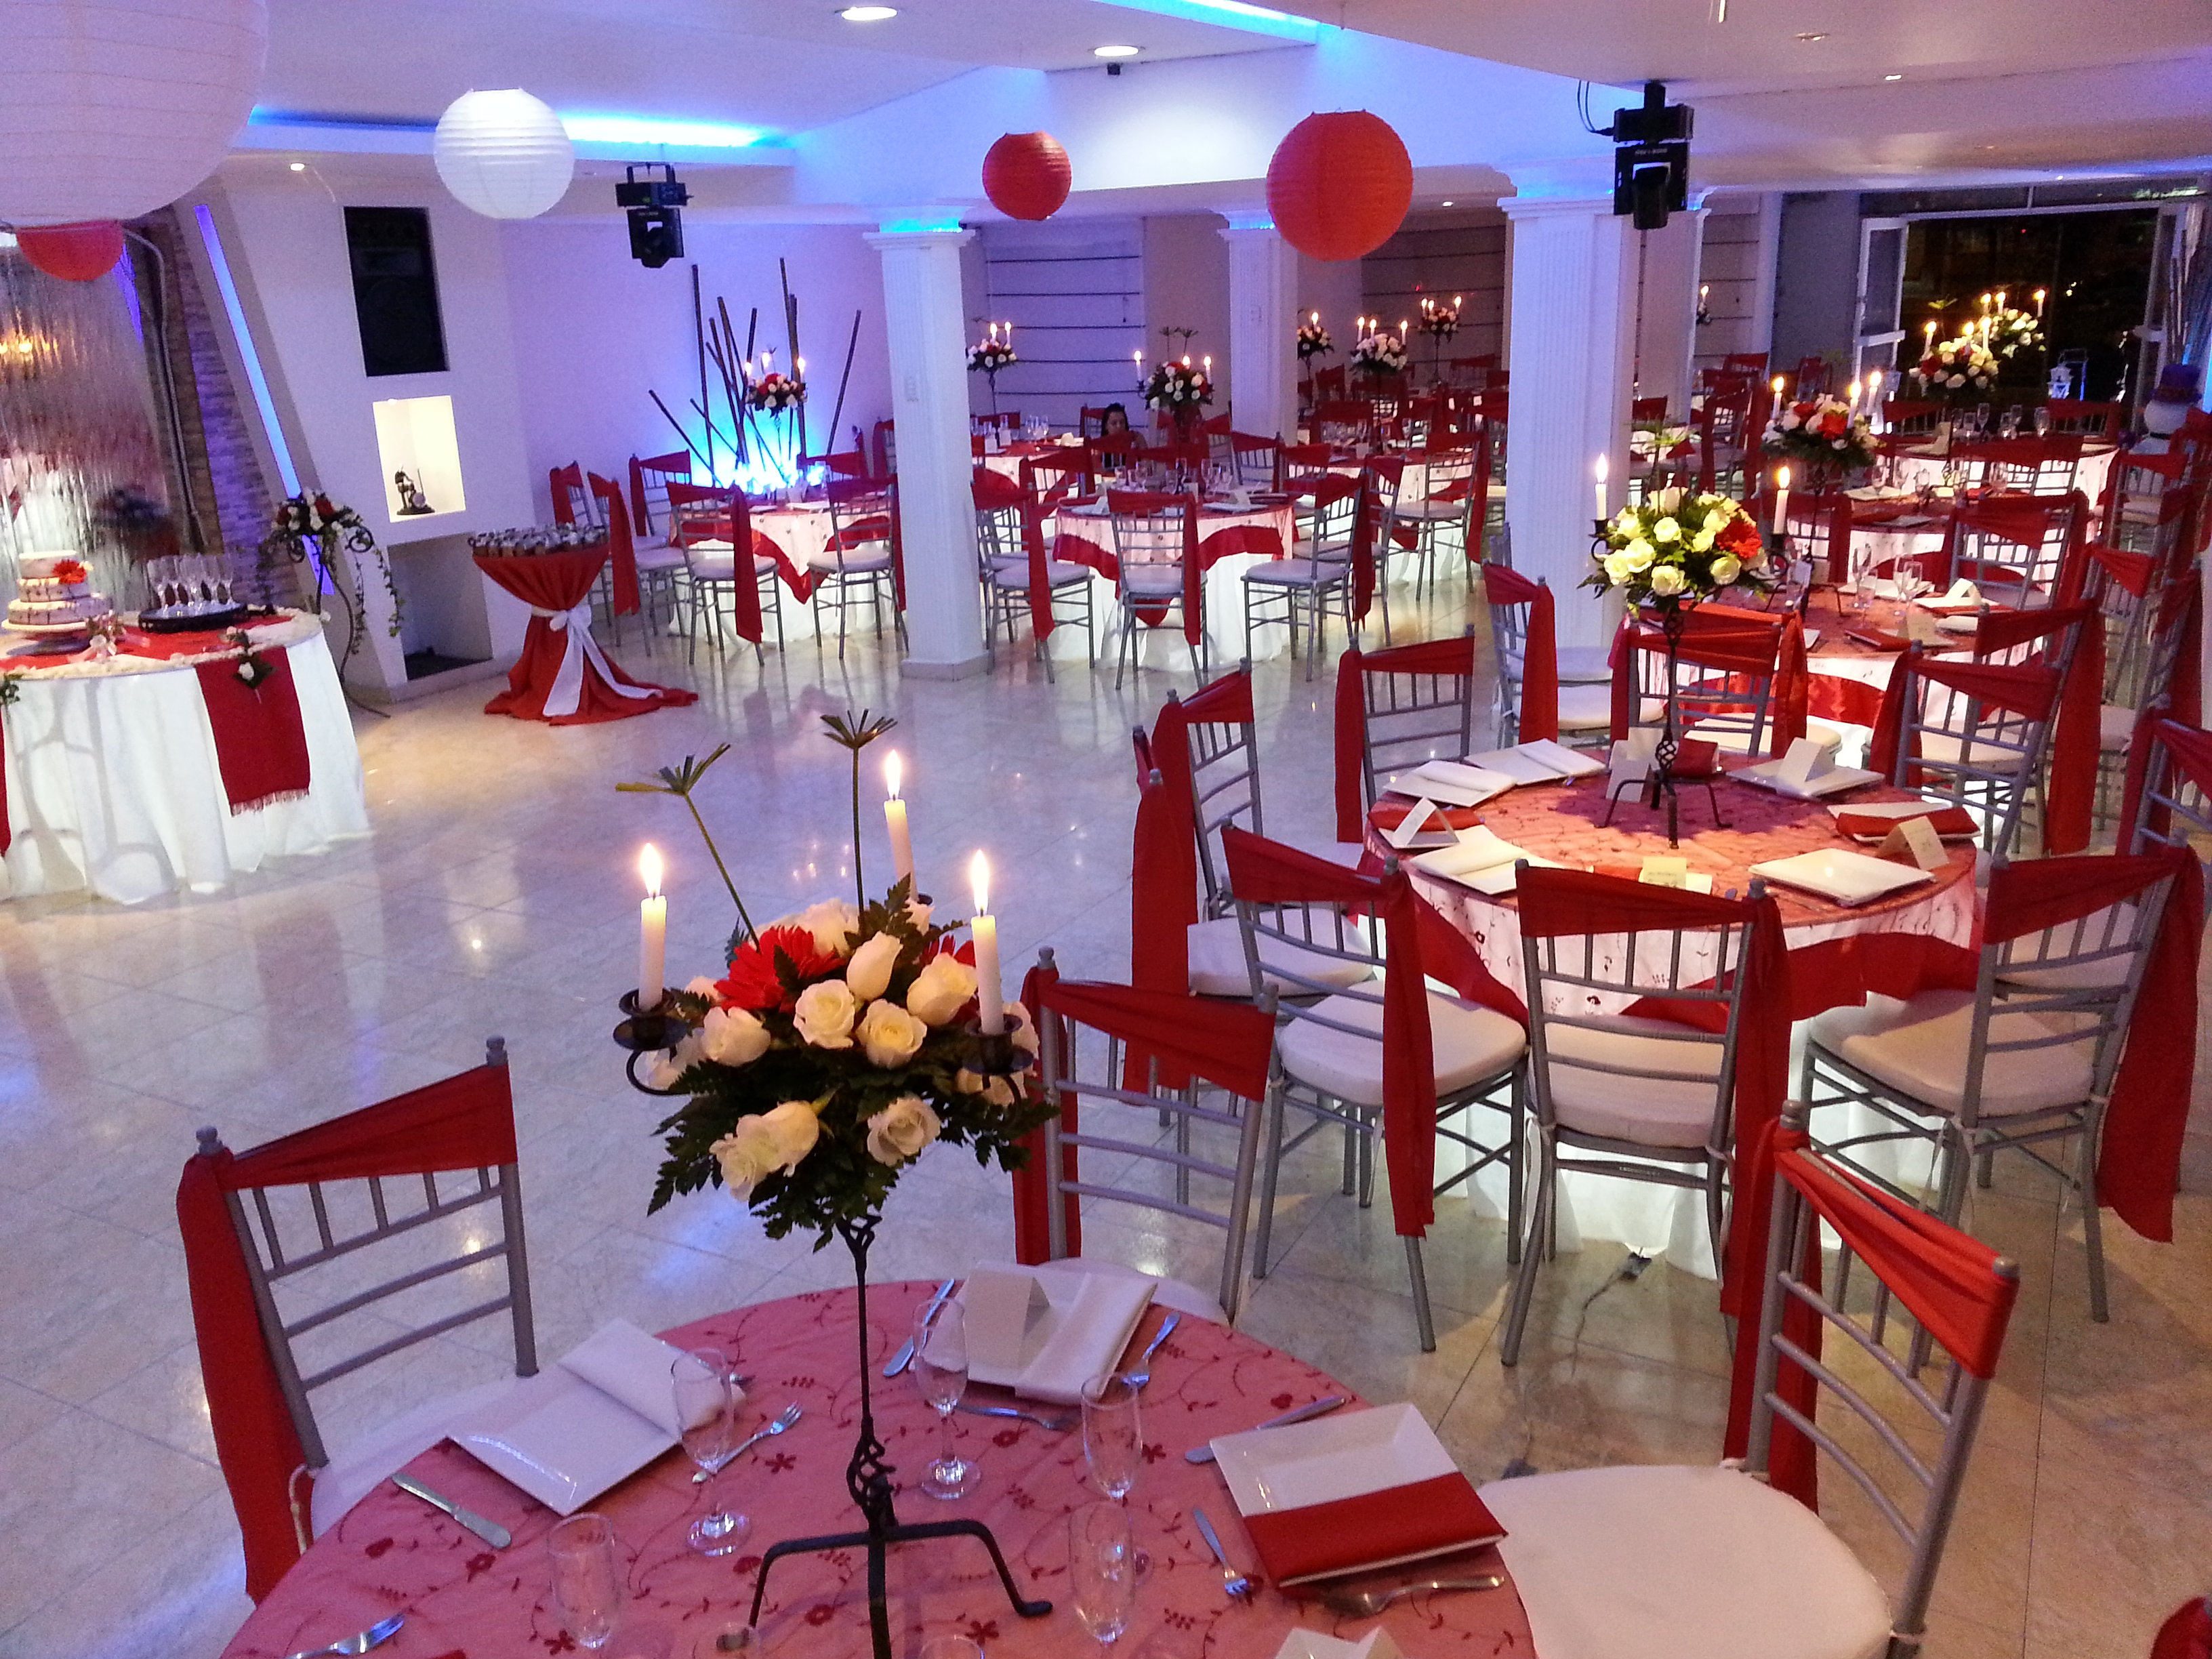 Salon de eventos bodas campestres salon de recepciones for 3 fifty eight salon